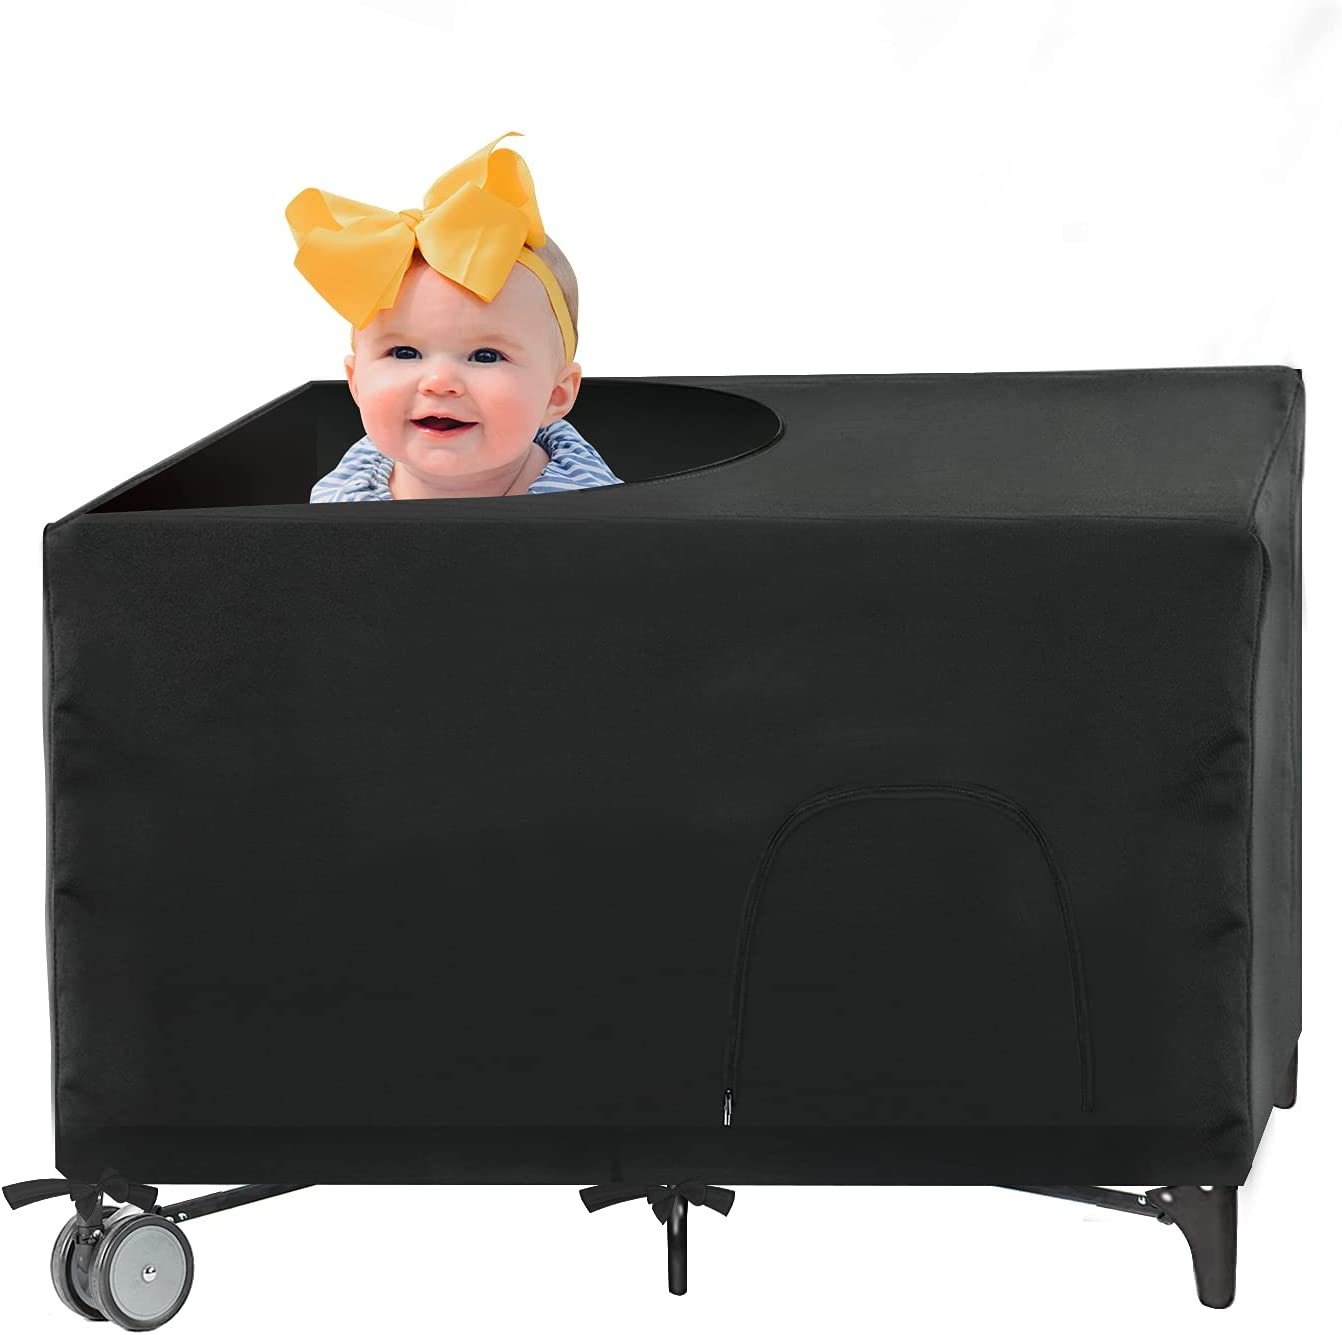 SAVITA Baby Bed Blackout Cover for Pack N Play Baby Bed, 38X27 inch Baby Bed Blackout Shade Baby Cot Net Portable Tent Breathable Bed Netting for Indoor or Outdoor Travel Baby Better Sleeping(Black)